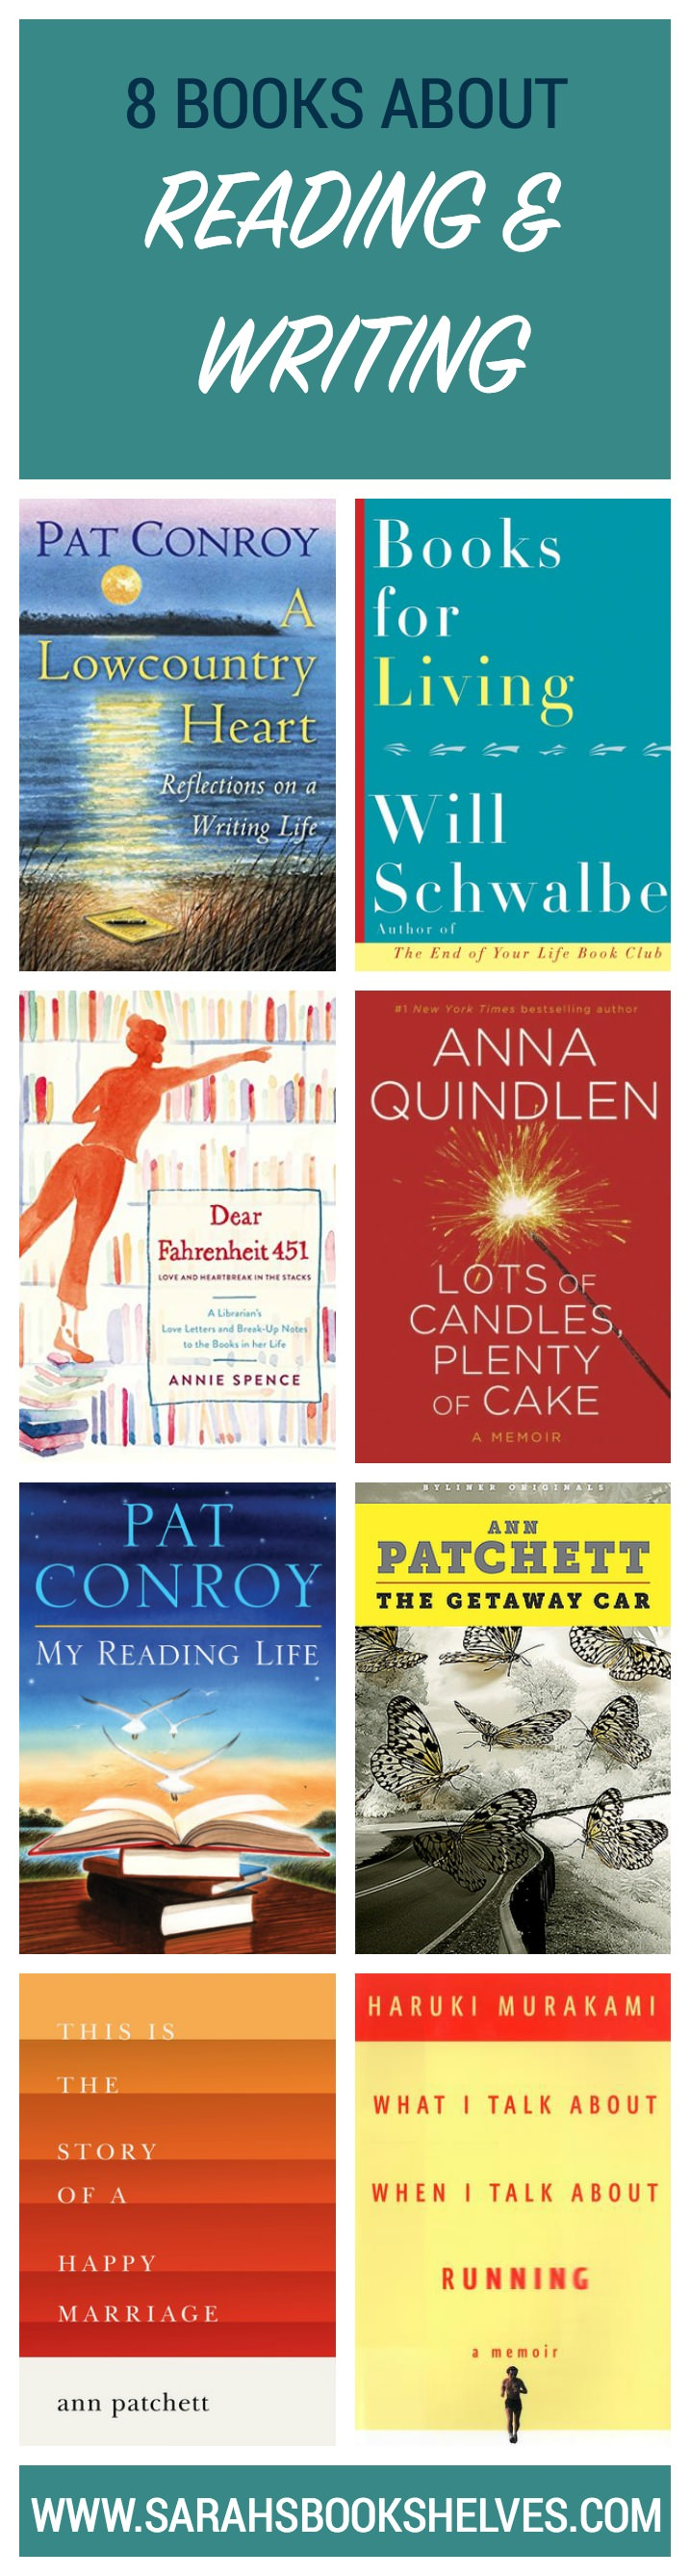 Some of my very favorite authors (Pat Conroy, Anna Quindlen, Ann Patchett) are on this list of books about the reading and writing life. #reading #book #bookish #bookworms #booklovers #booklist